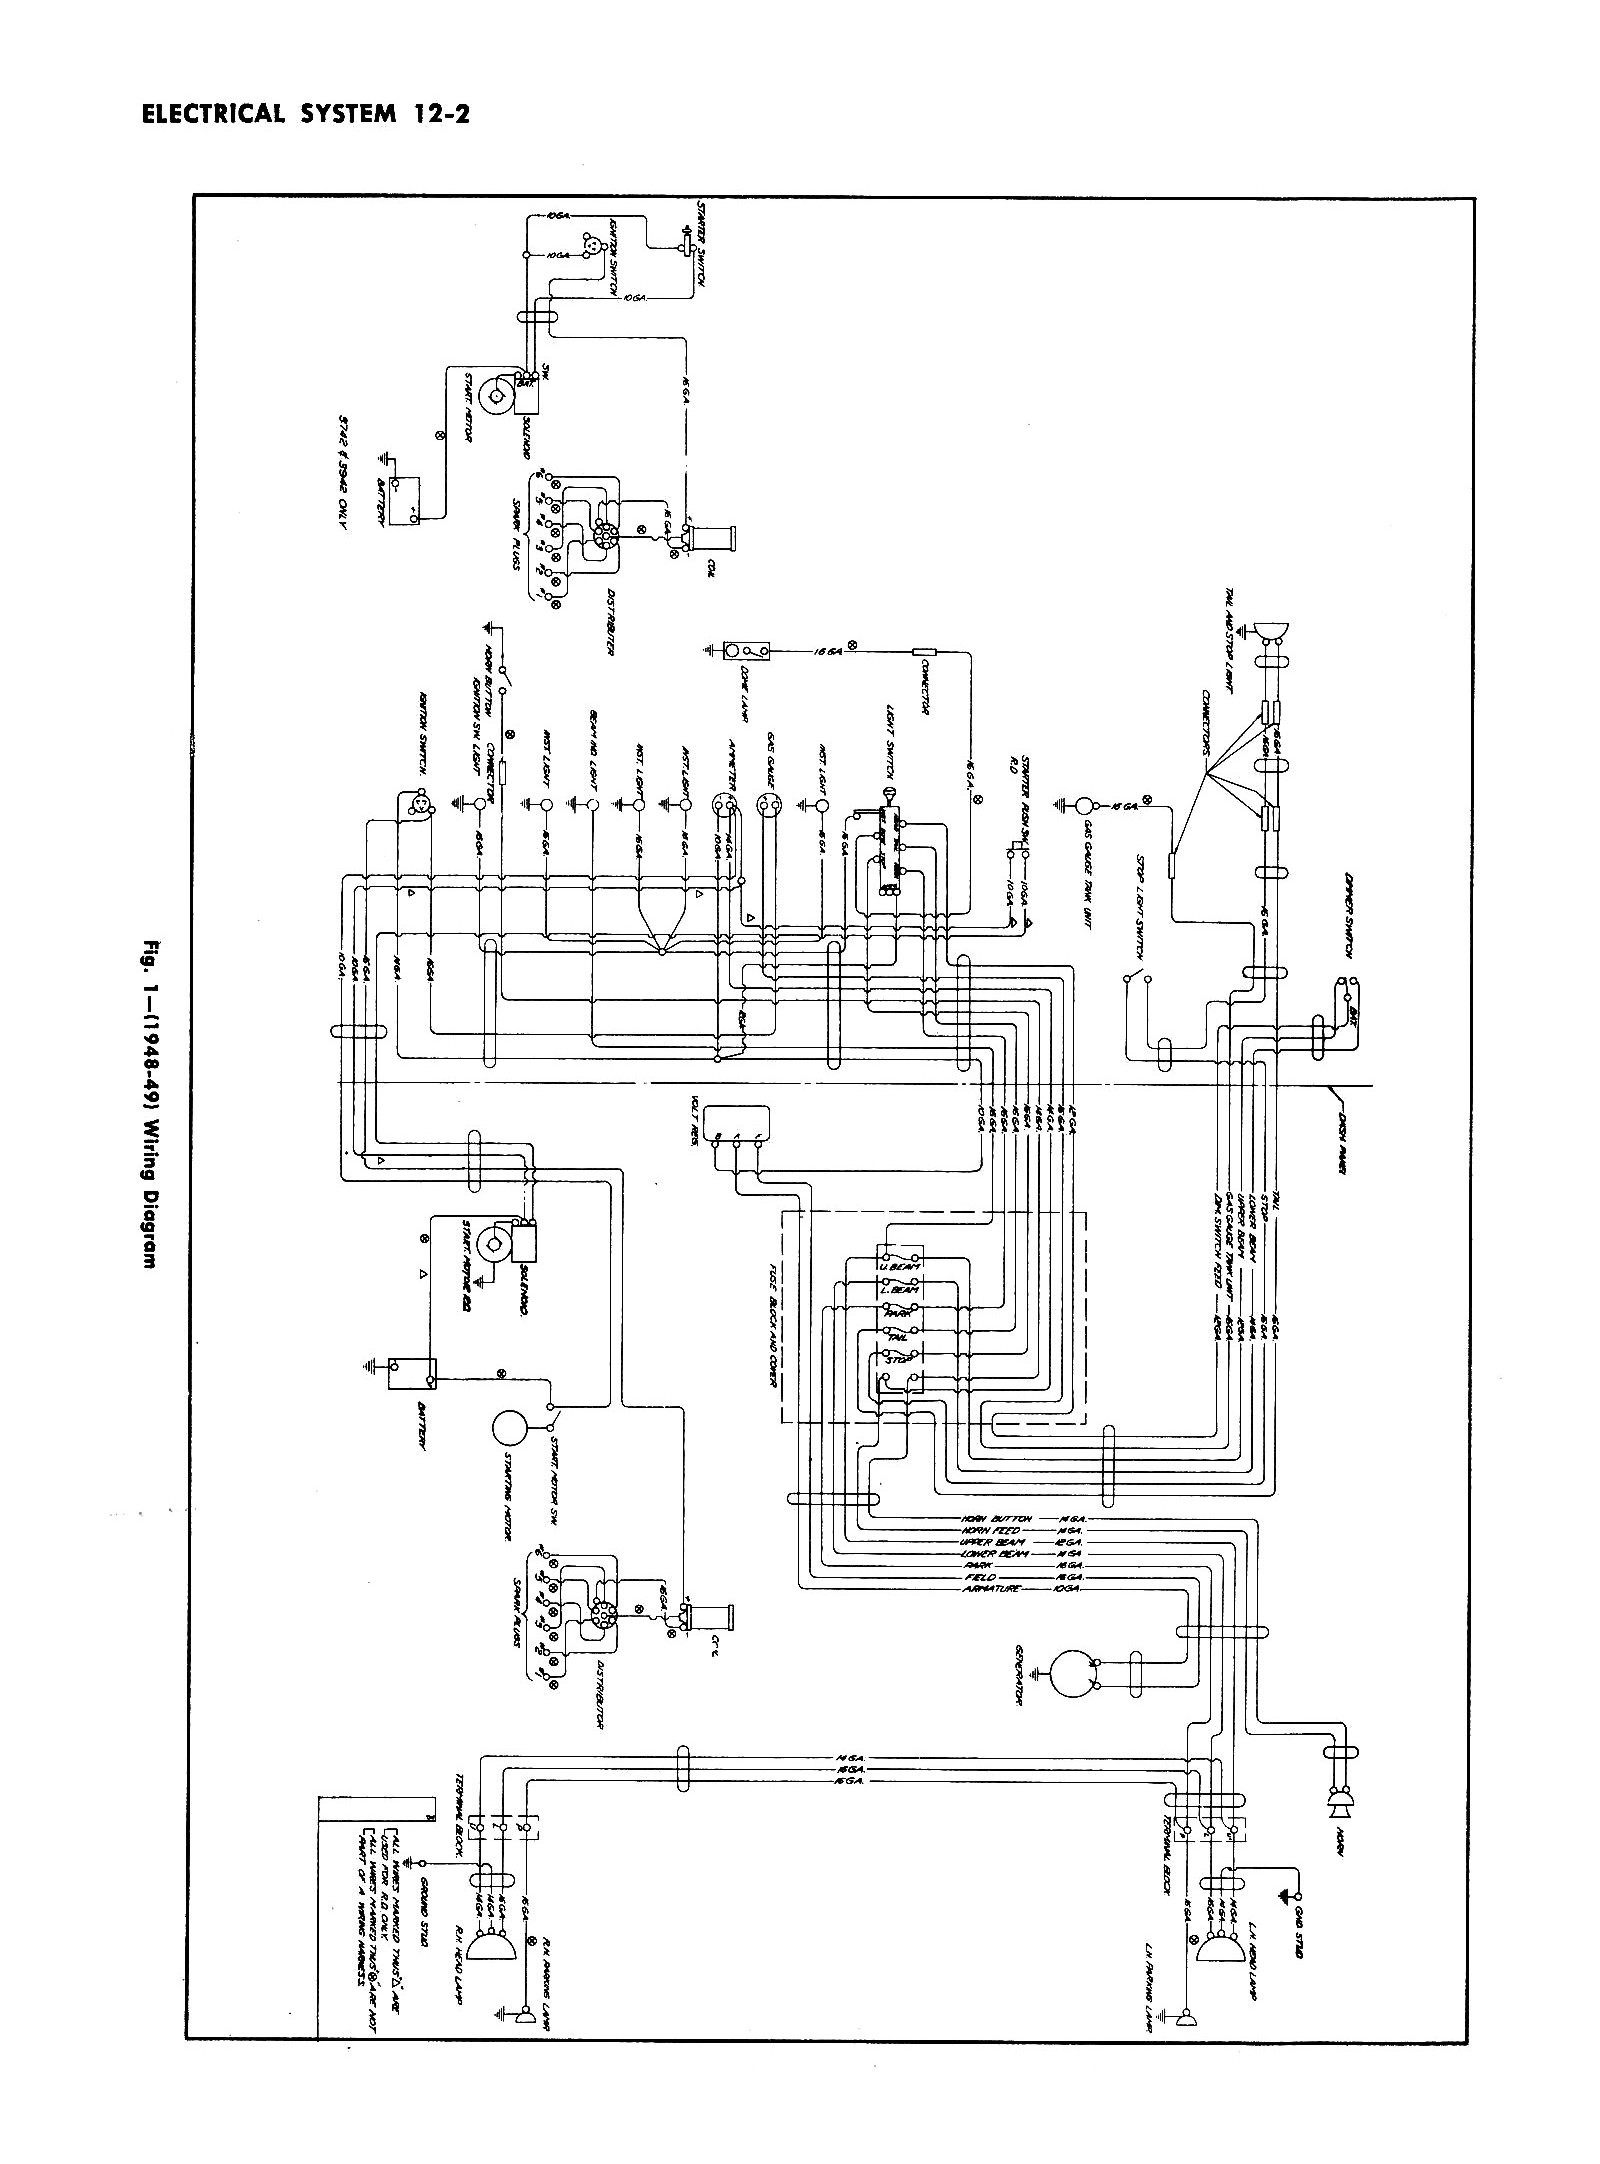 Wiring Diagram 2004 Ford F350 Wiring Diagram Old Antique Cars Ford